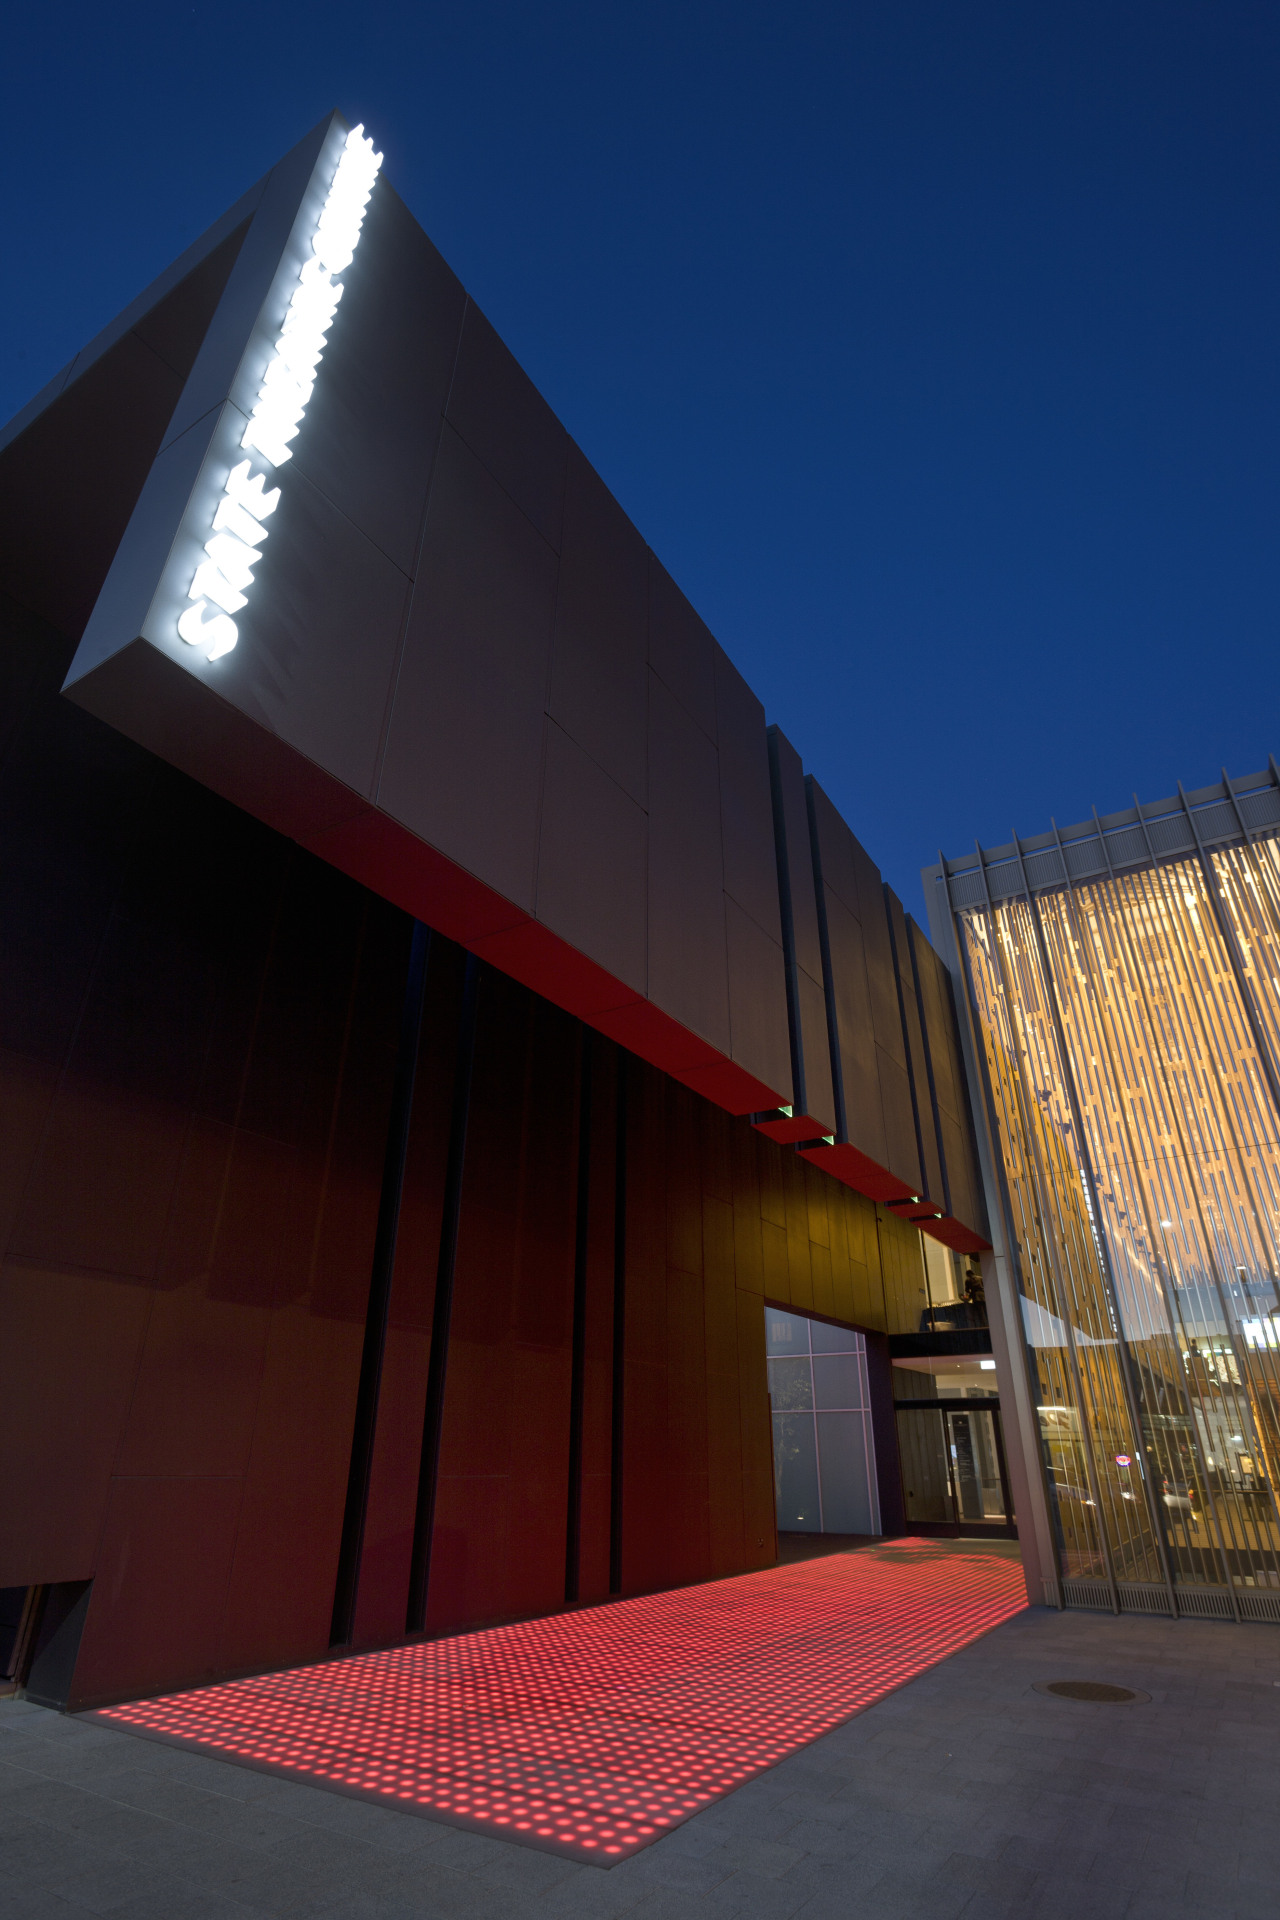 This is the Perth State Theatre, designed by angle, architecture, building, daylighting, facade, house, landmark, light, line, roof, sky, structure, wood, red, blue, black